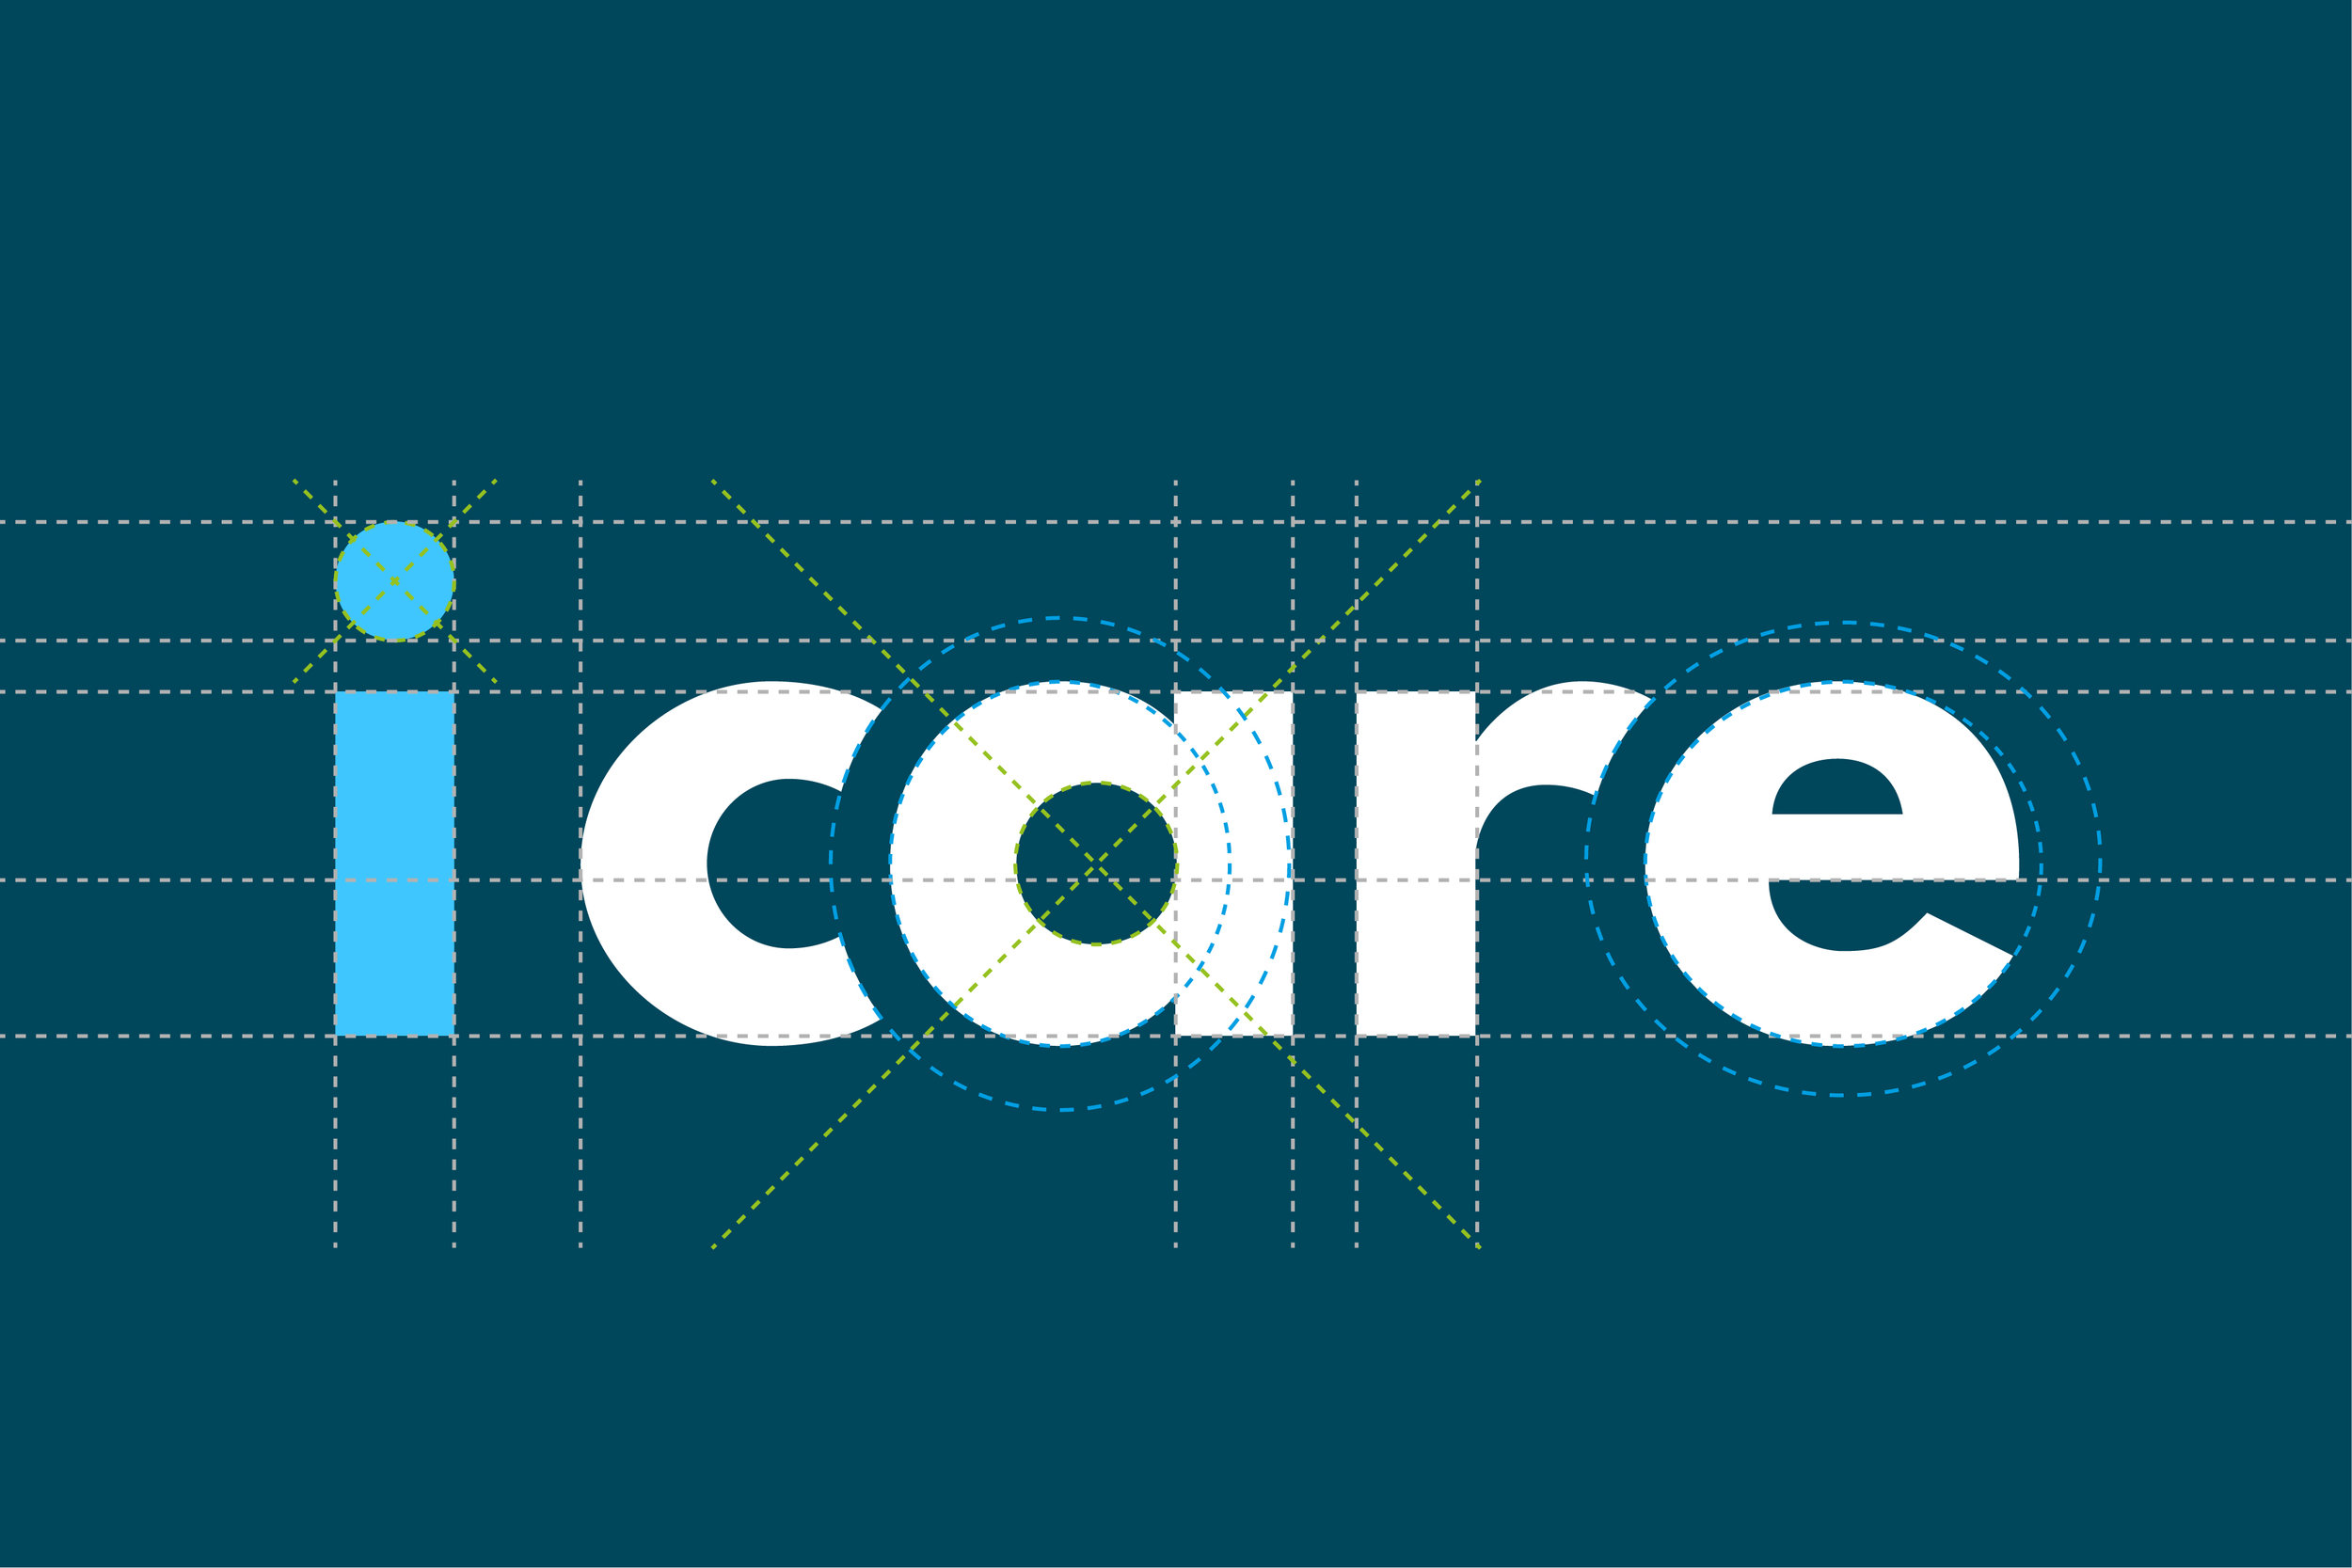 dock-i-care-logo-website-30x20cm-guidelines-01.jpg